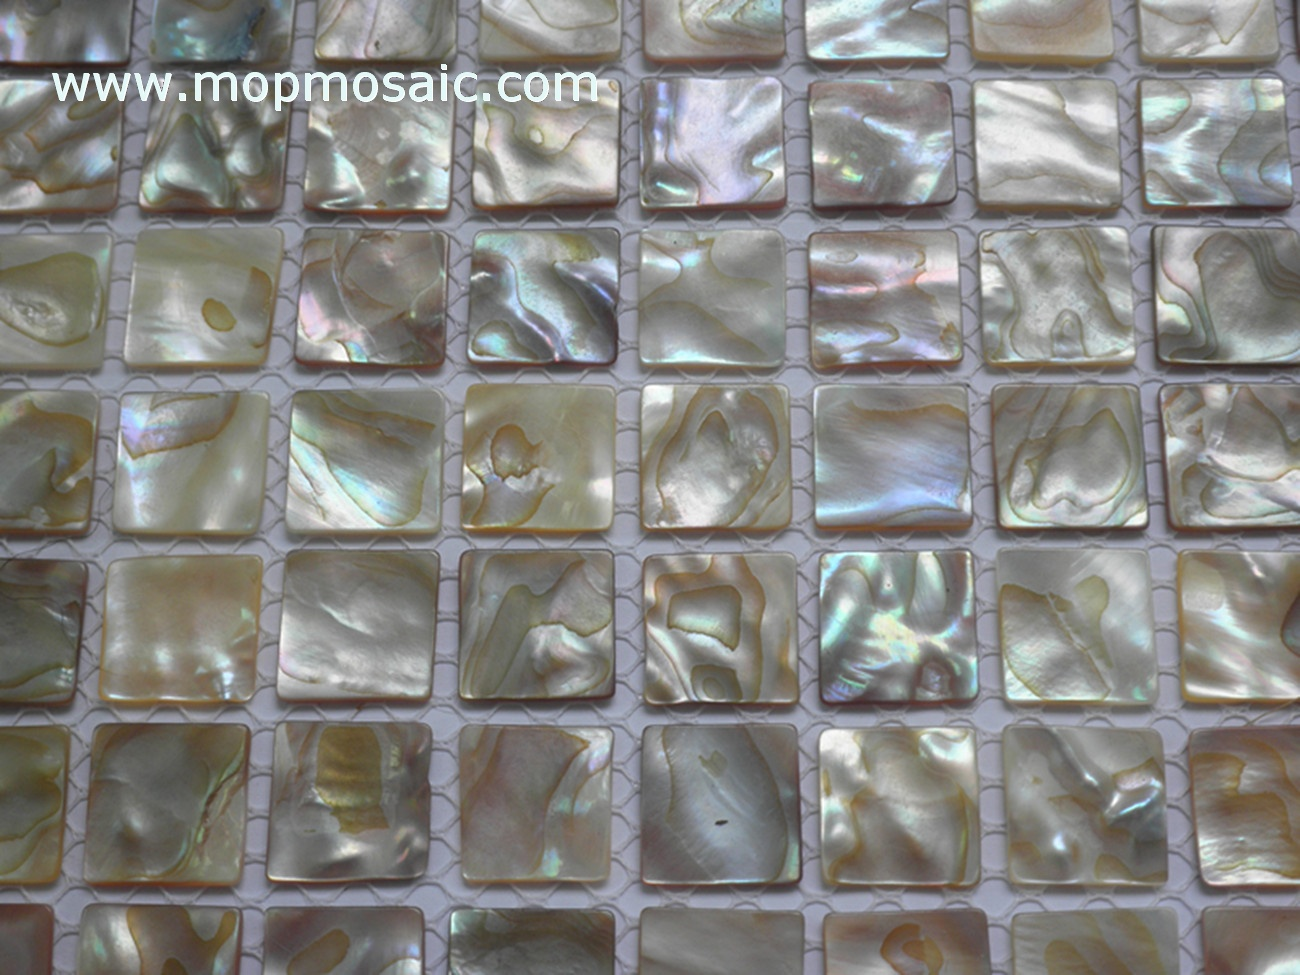 Mother of pearl mosaic(Rianbow dapple shell mosaic)